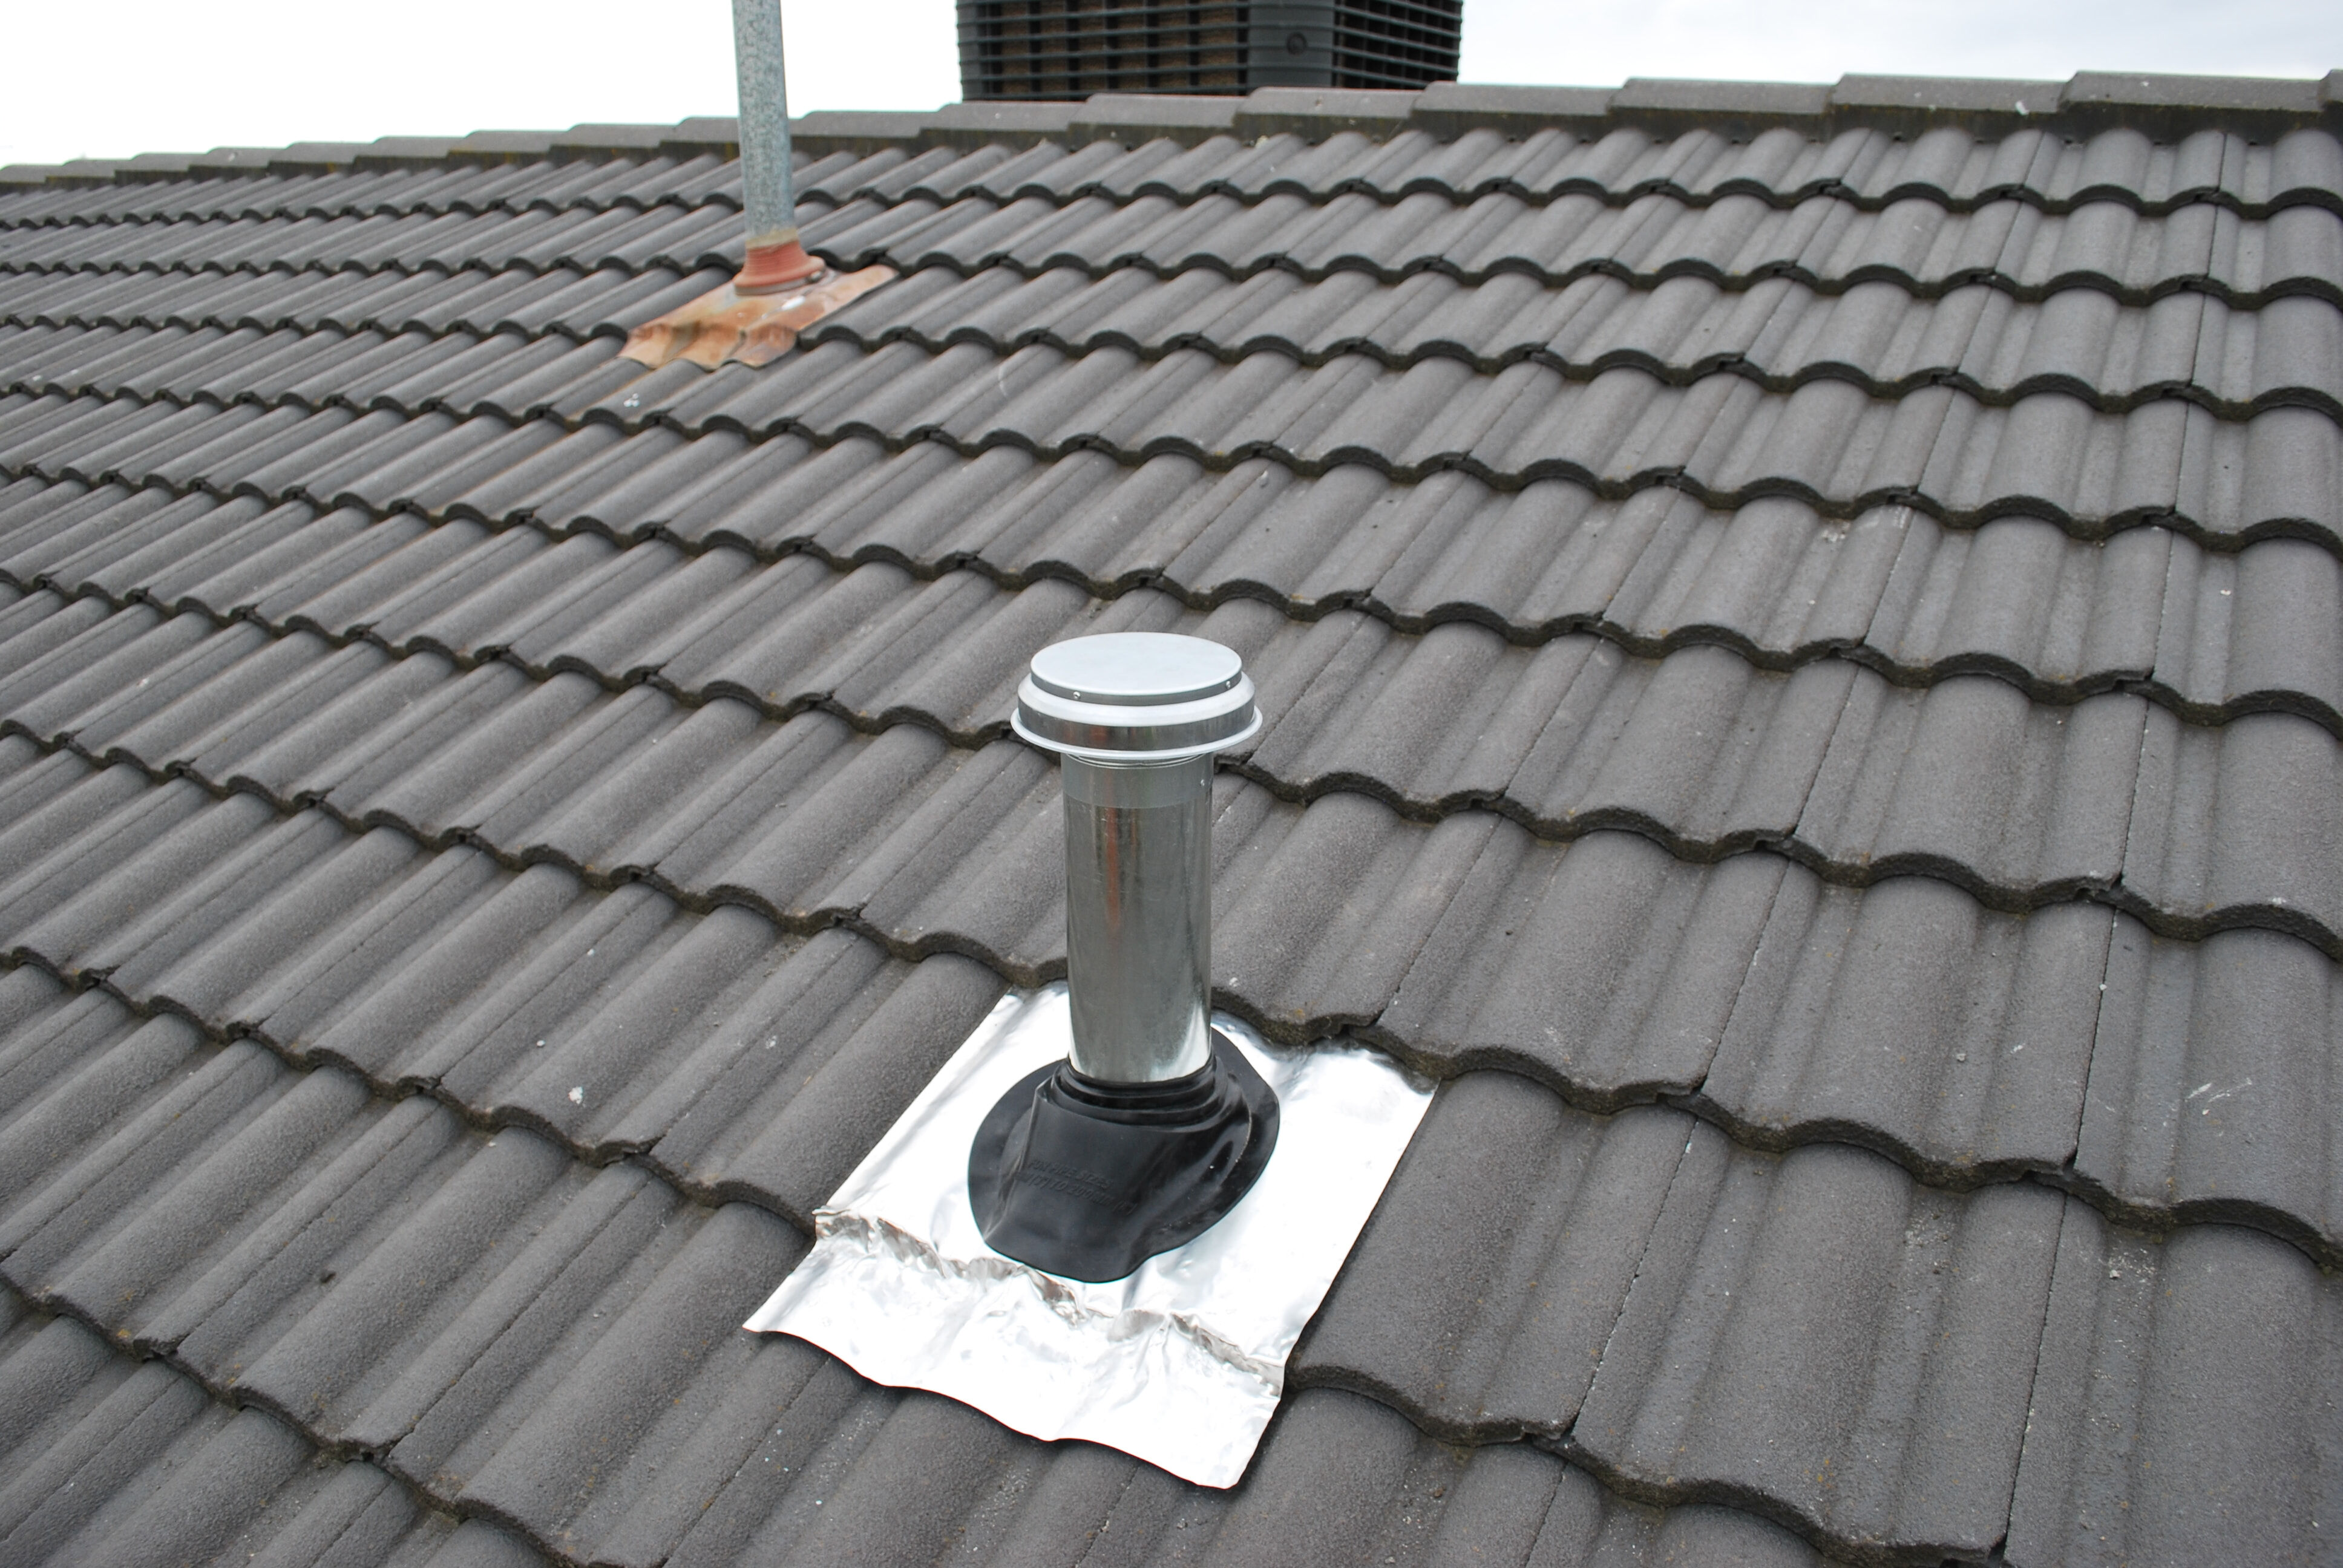 Install duct pipe to rangehood through the roof tiles 3